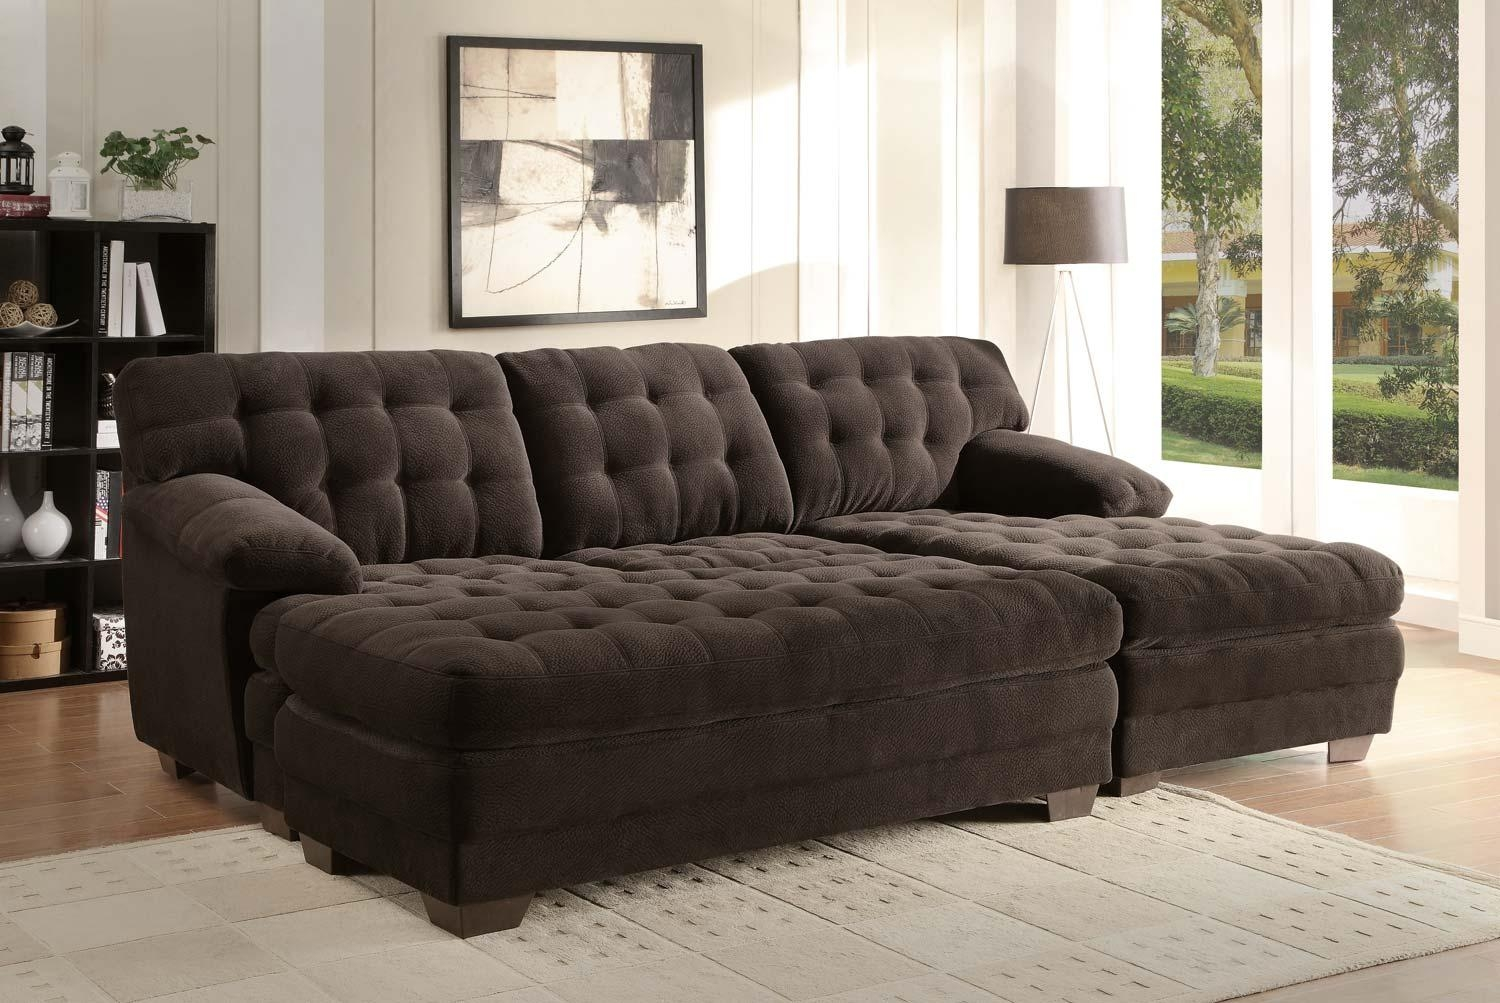 Sectional Sofa Couch Reversible Chaise Micro Suede Chocolate For Sofa With Chaise And Ottoman (View 13 of 20)